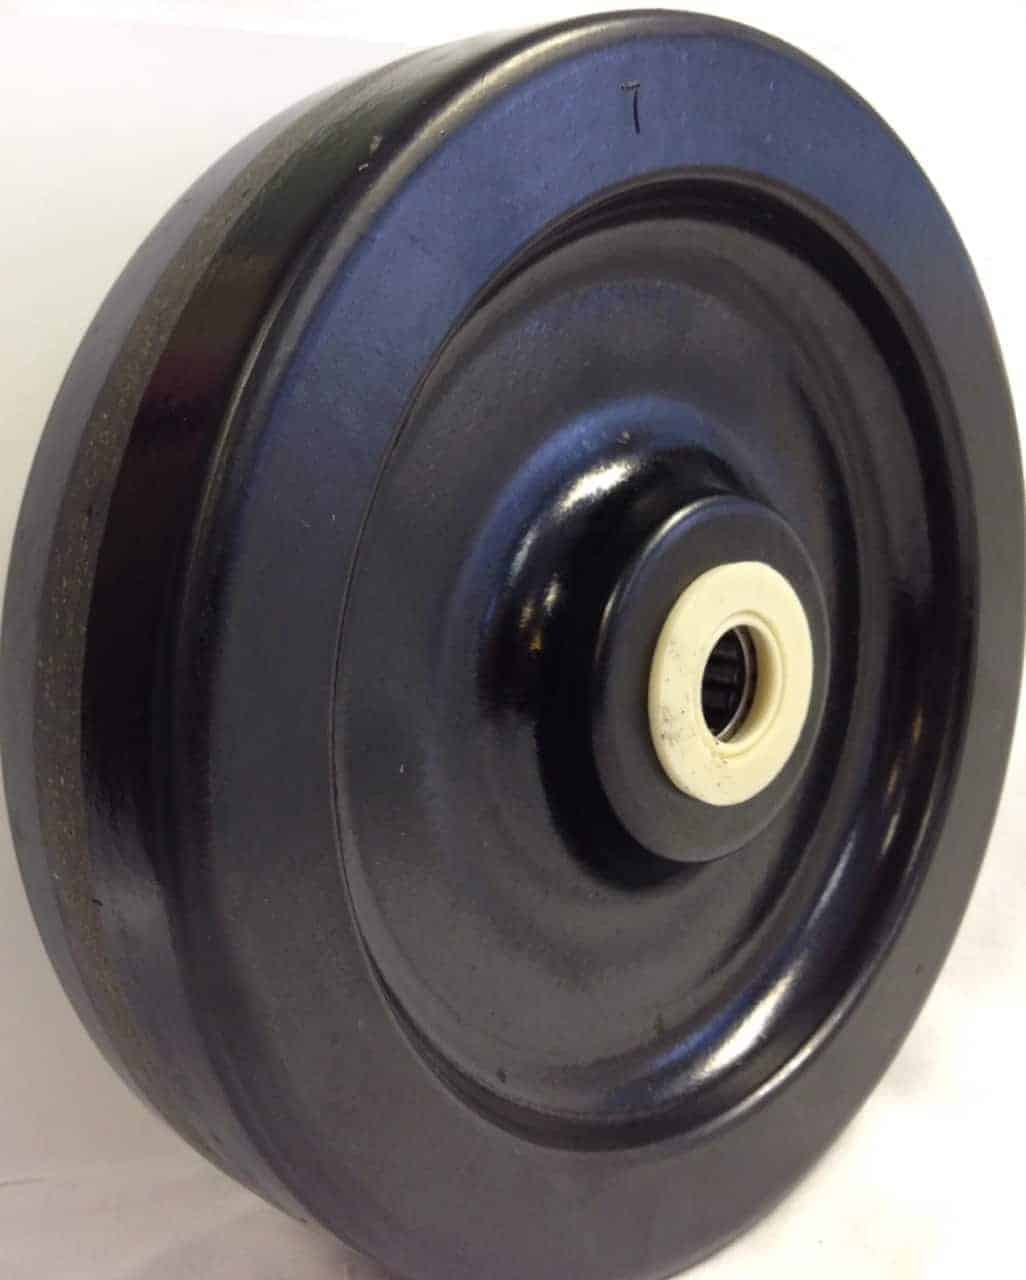 18″ Phenolic Wheel With 3-1/4″ Hub 1-1/4″ Roller Bearing 3500 Lbs Capacity